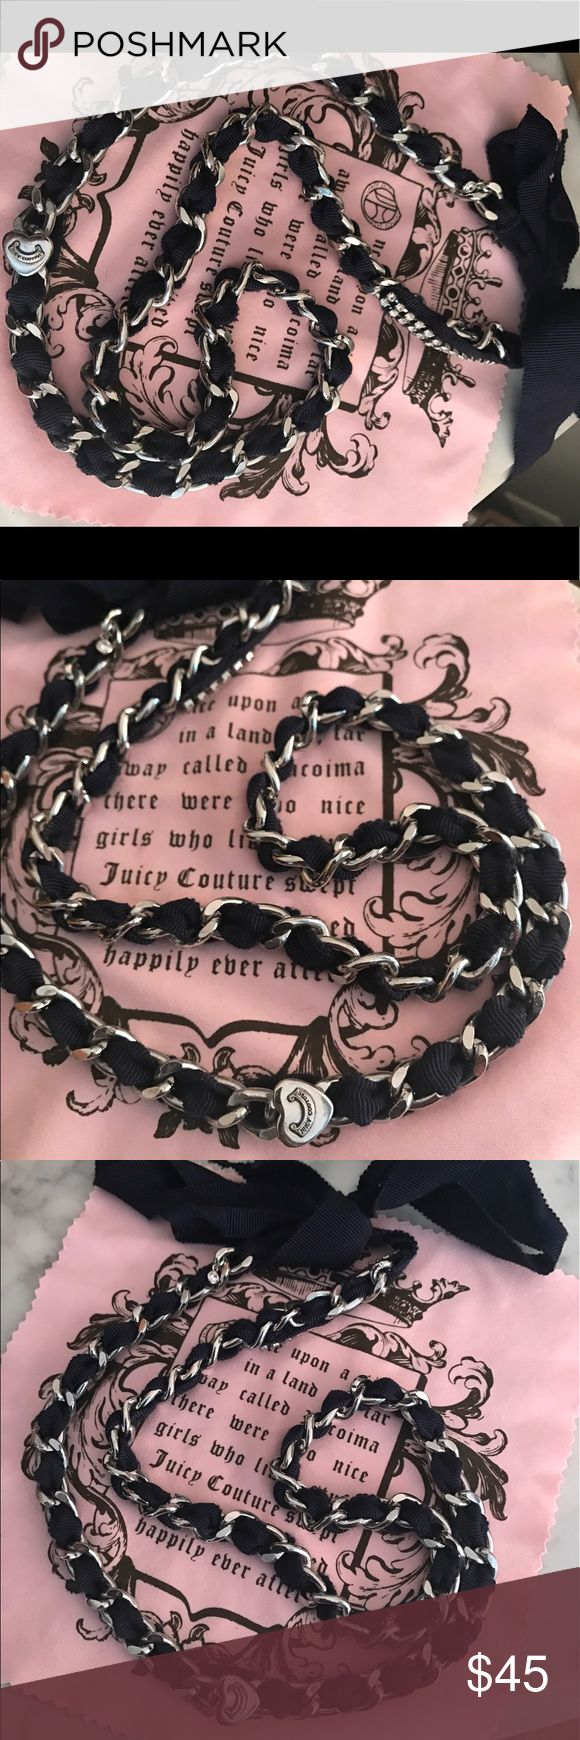 Juicy Couture Necklace Navy and silver juicy couture necklace with tie ribbon closure. Features diamond trim at the top and silver heart with juicy couture logo on the side Juicy Couture Jewelry Necklaces